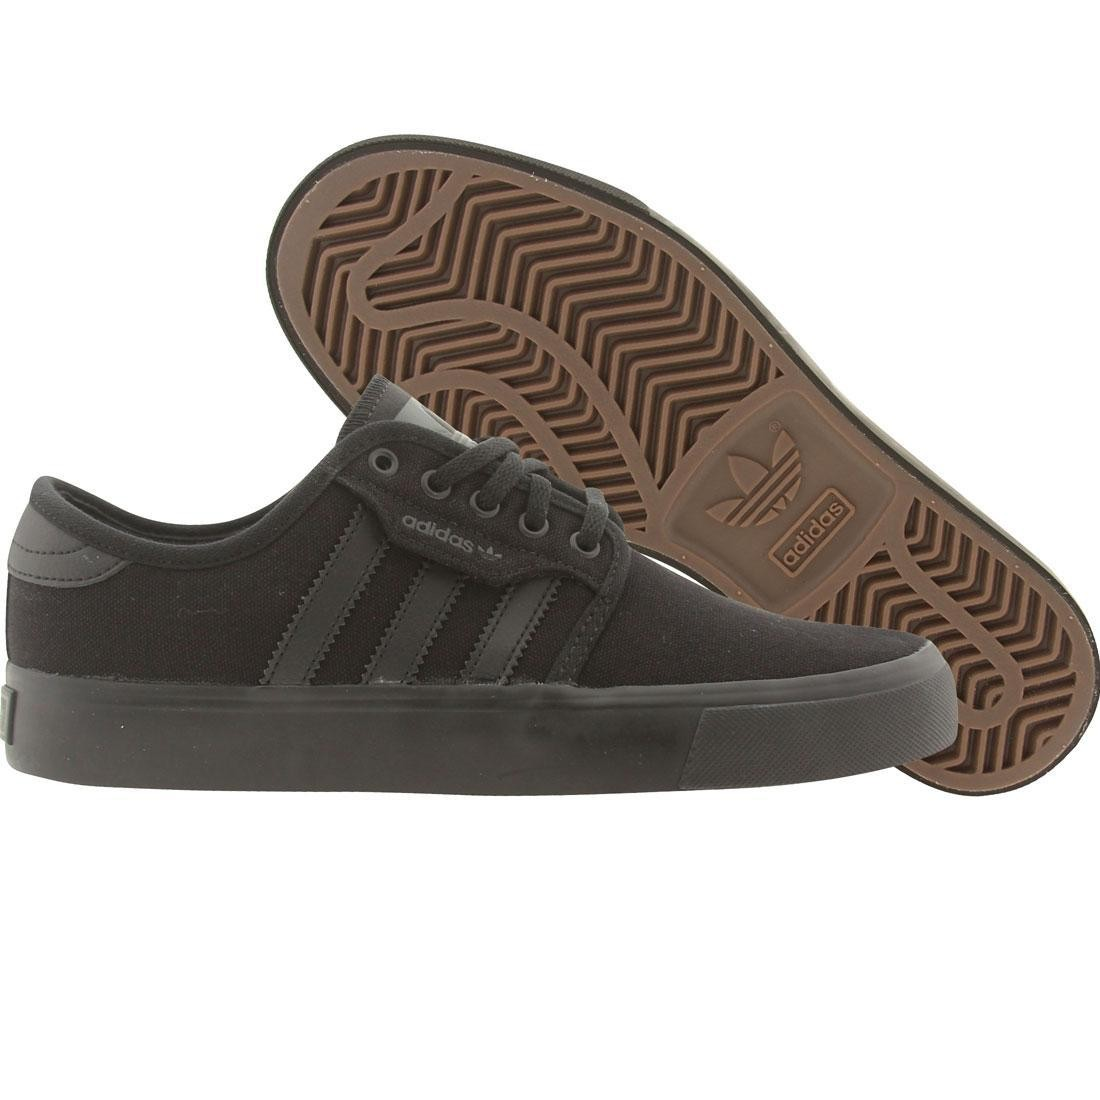 Adidas Skate Little Kids Seeley J (black / dark cinder)